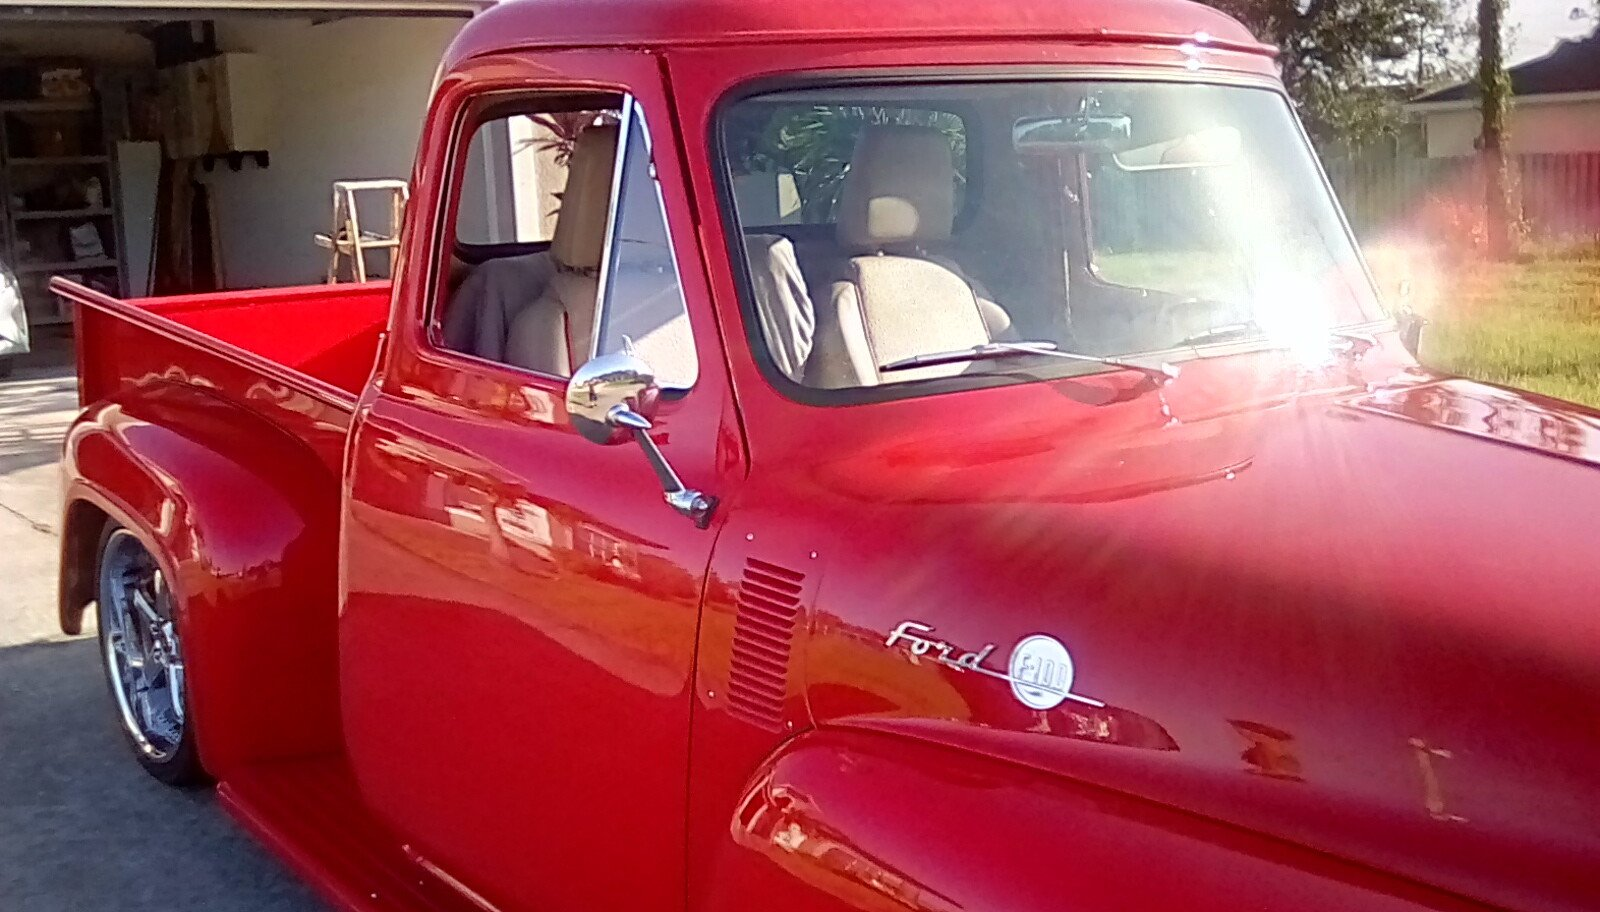 1955 Ford F100 Classics For Sale On Autotrader Interior Seat